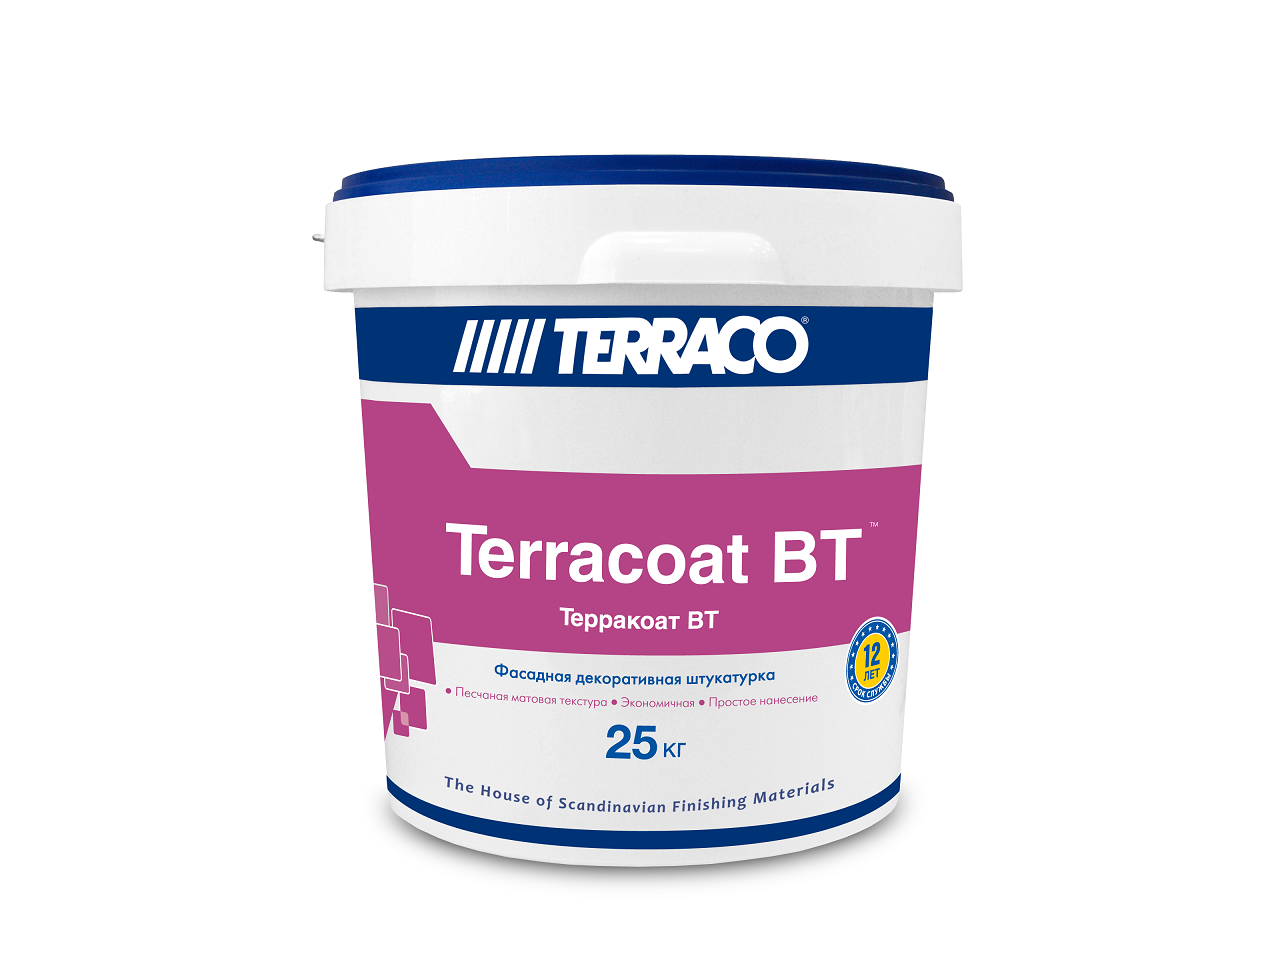 Terracoat BT (Терракоат BT) 25 кг